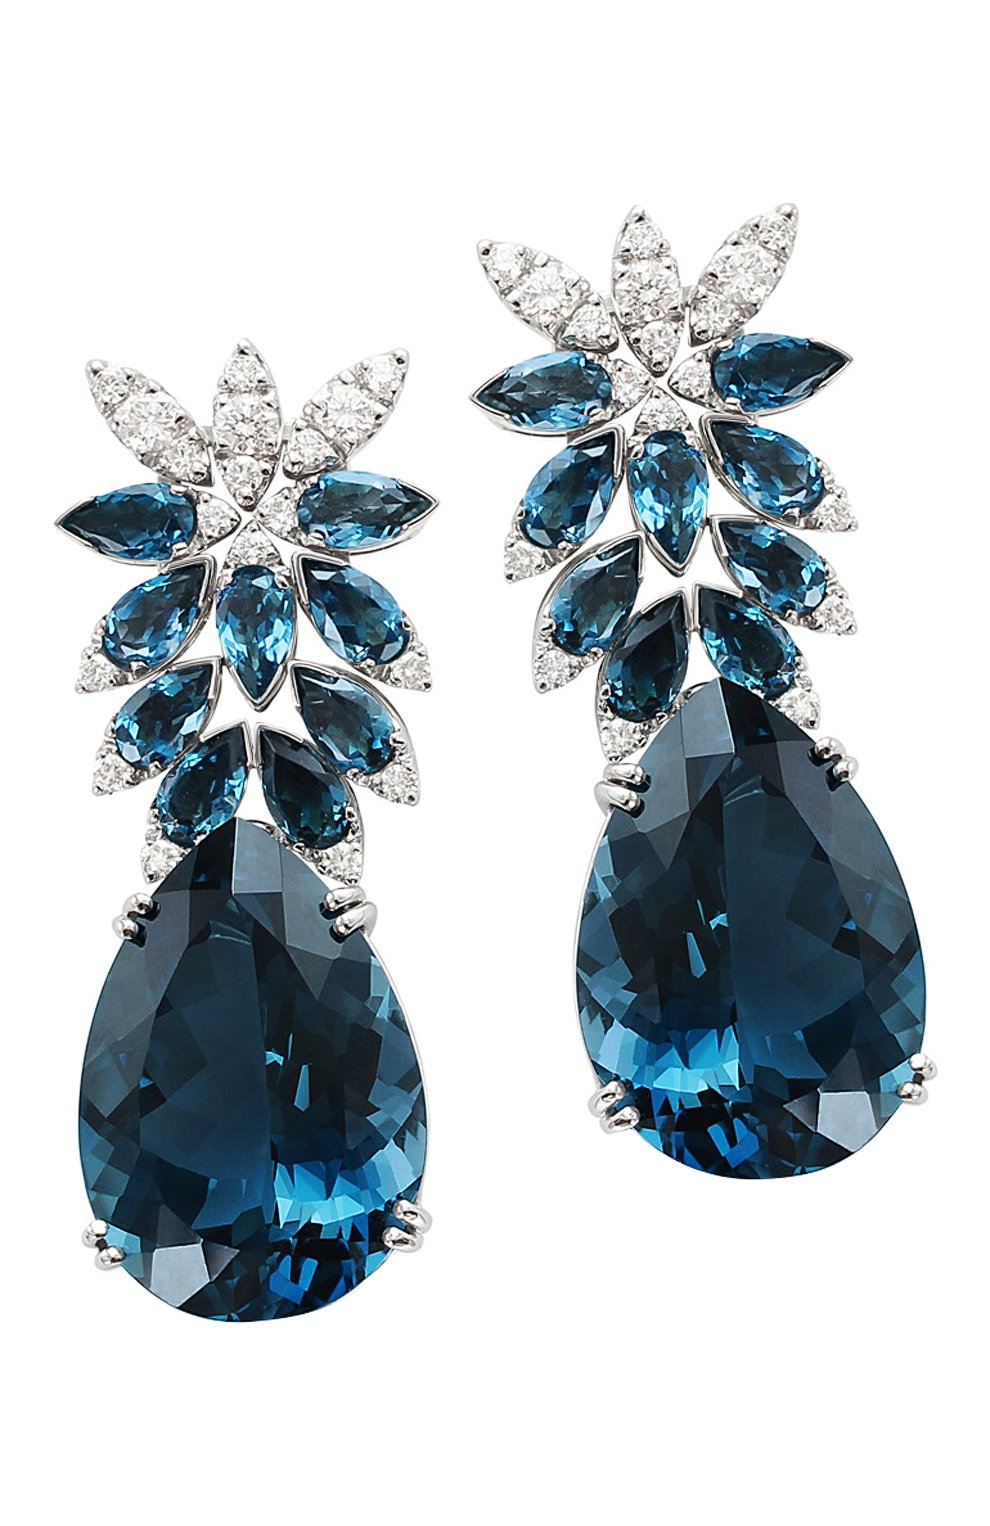 GHIRLANDA NEFERTITI EARRINGS WITH LONDON BLUE TOPAZ AND DIAMONDS